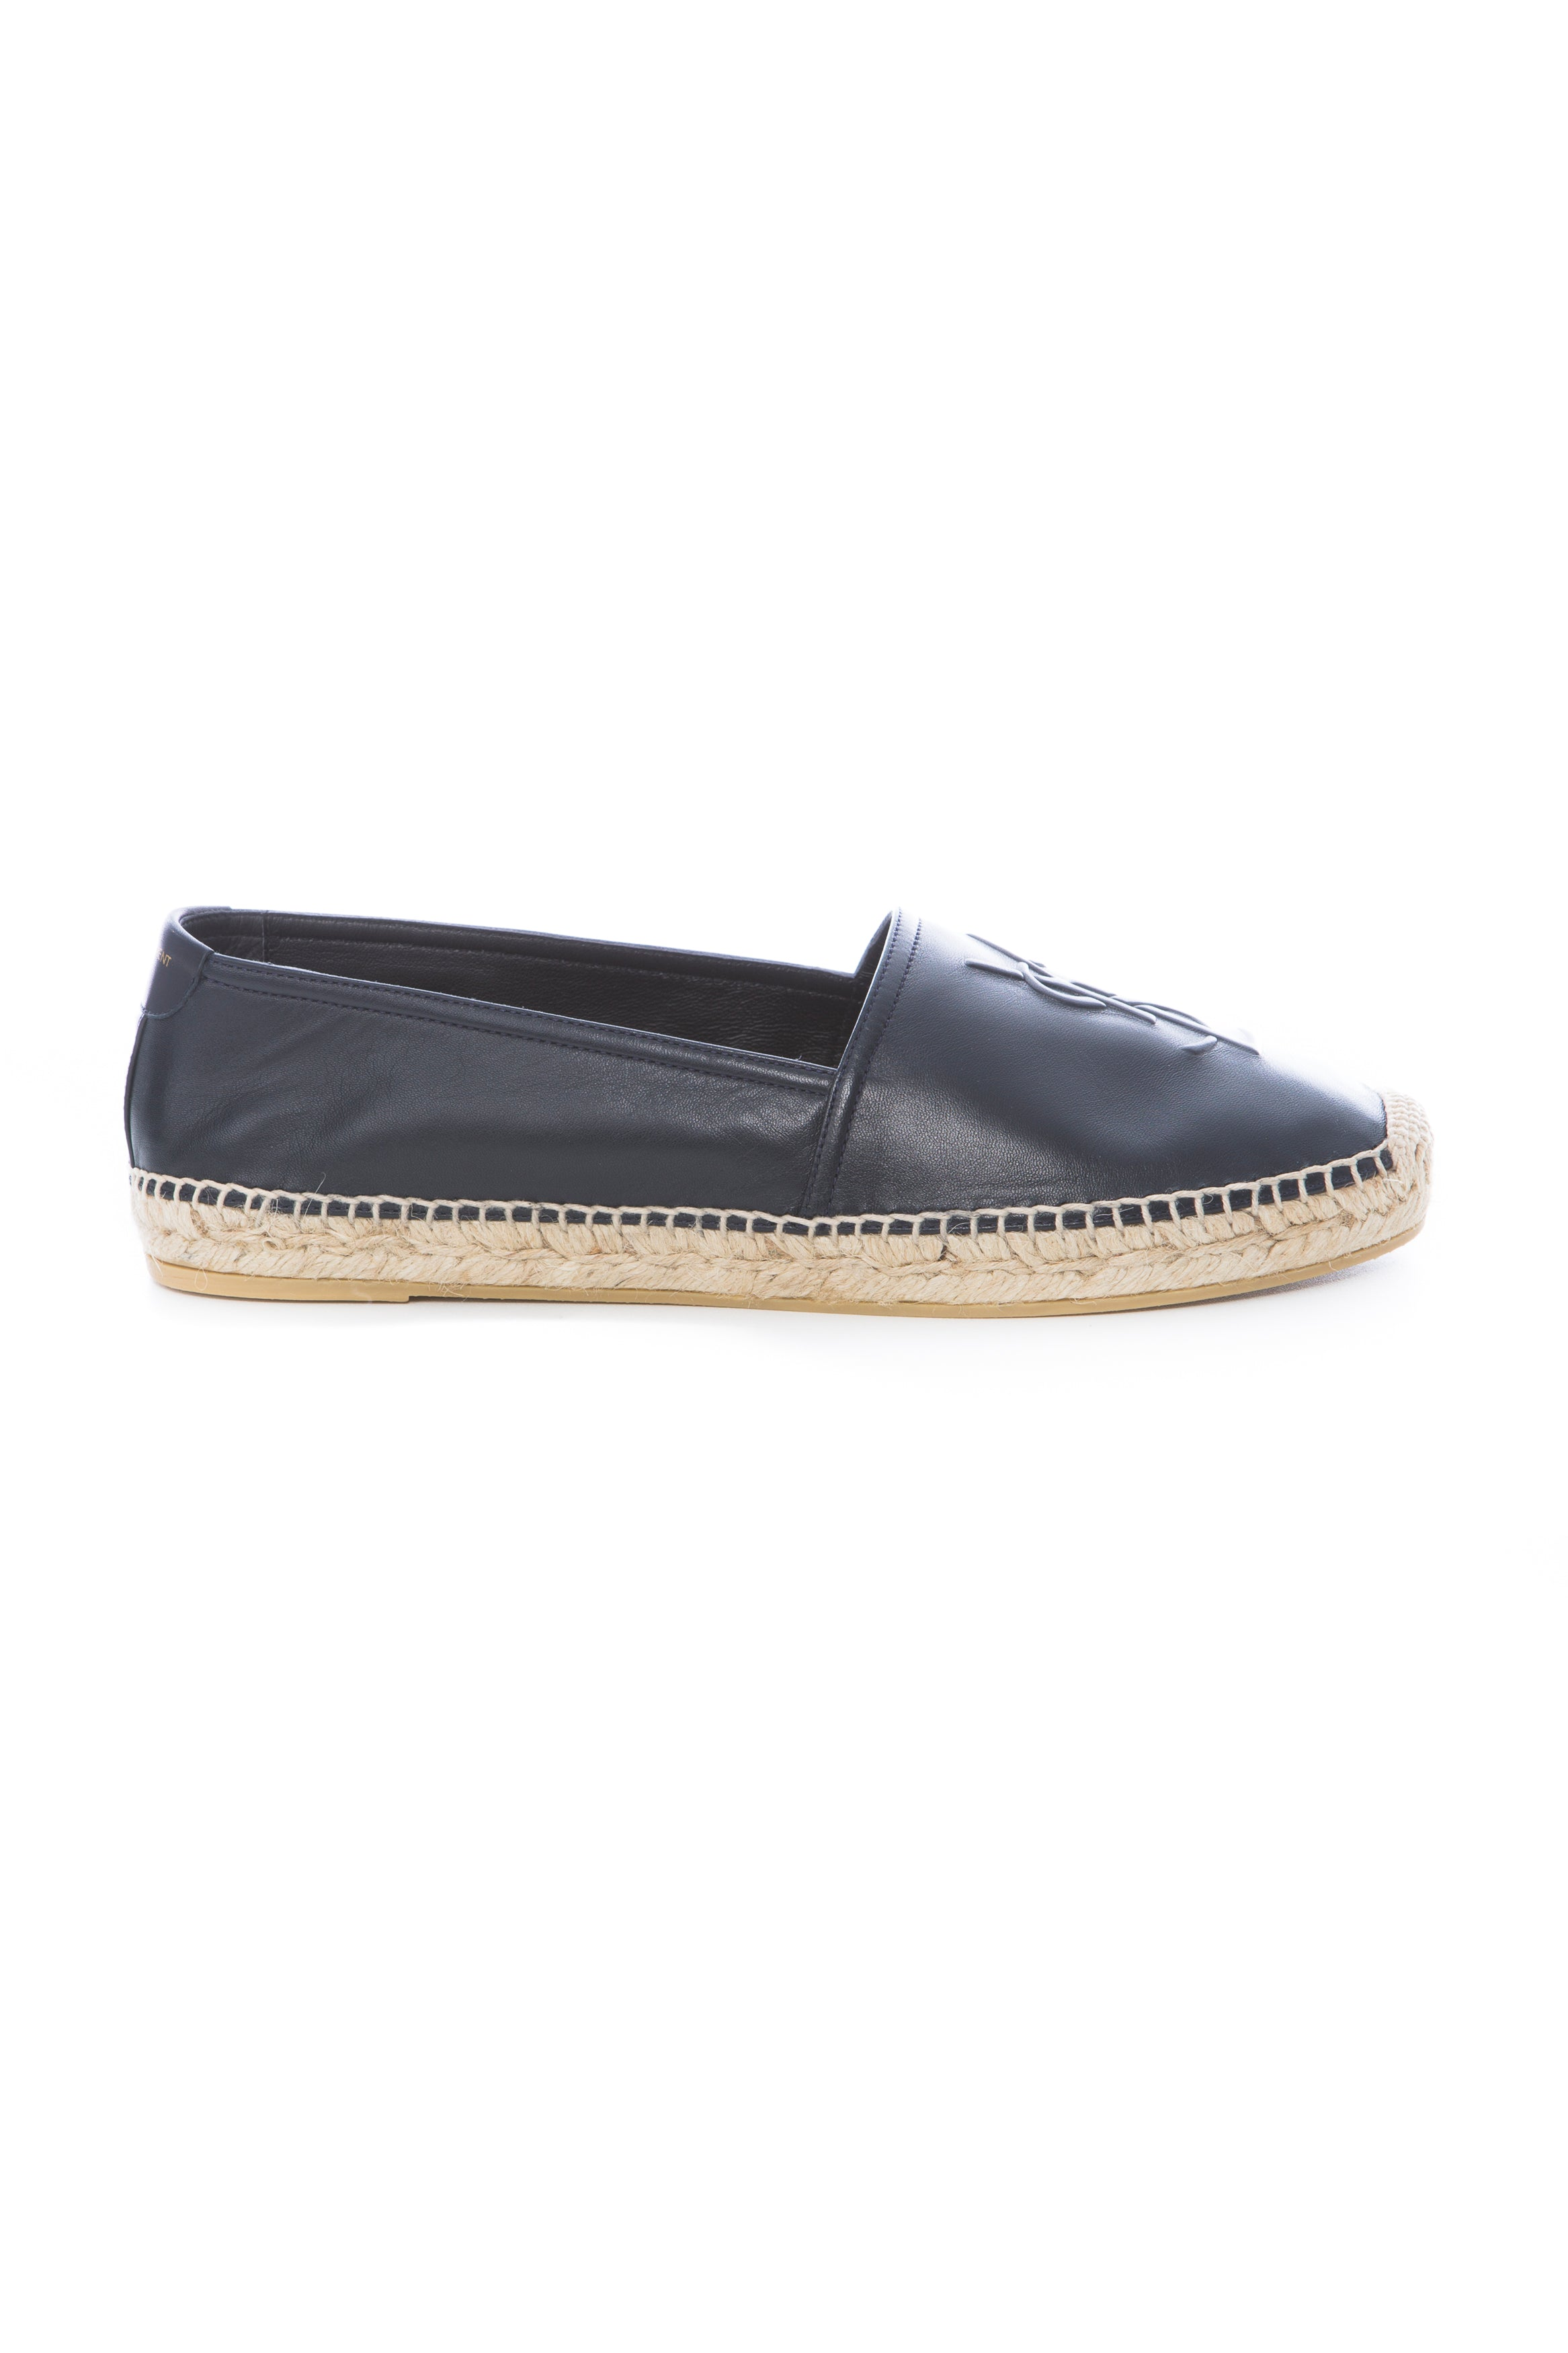 MONOGRAM ESPADRILLE IN NAVY LEATHER